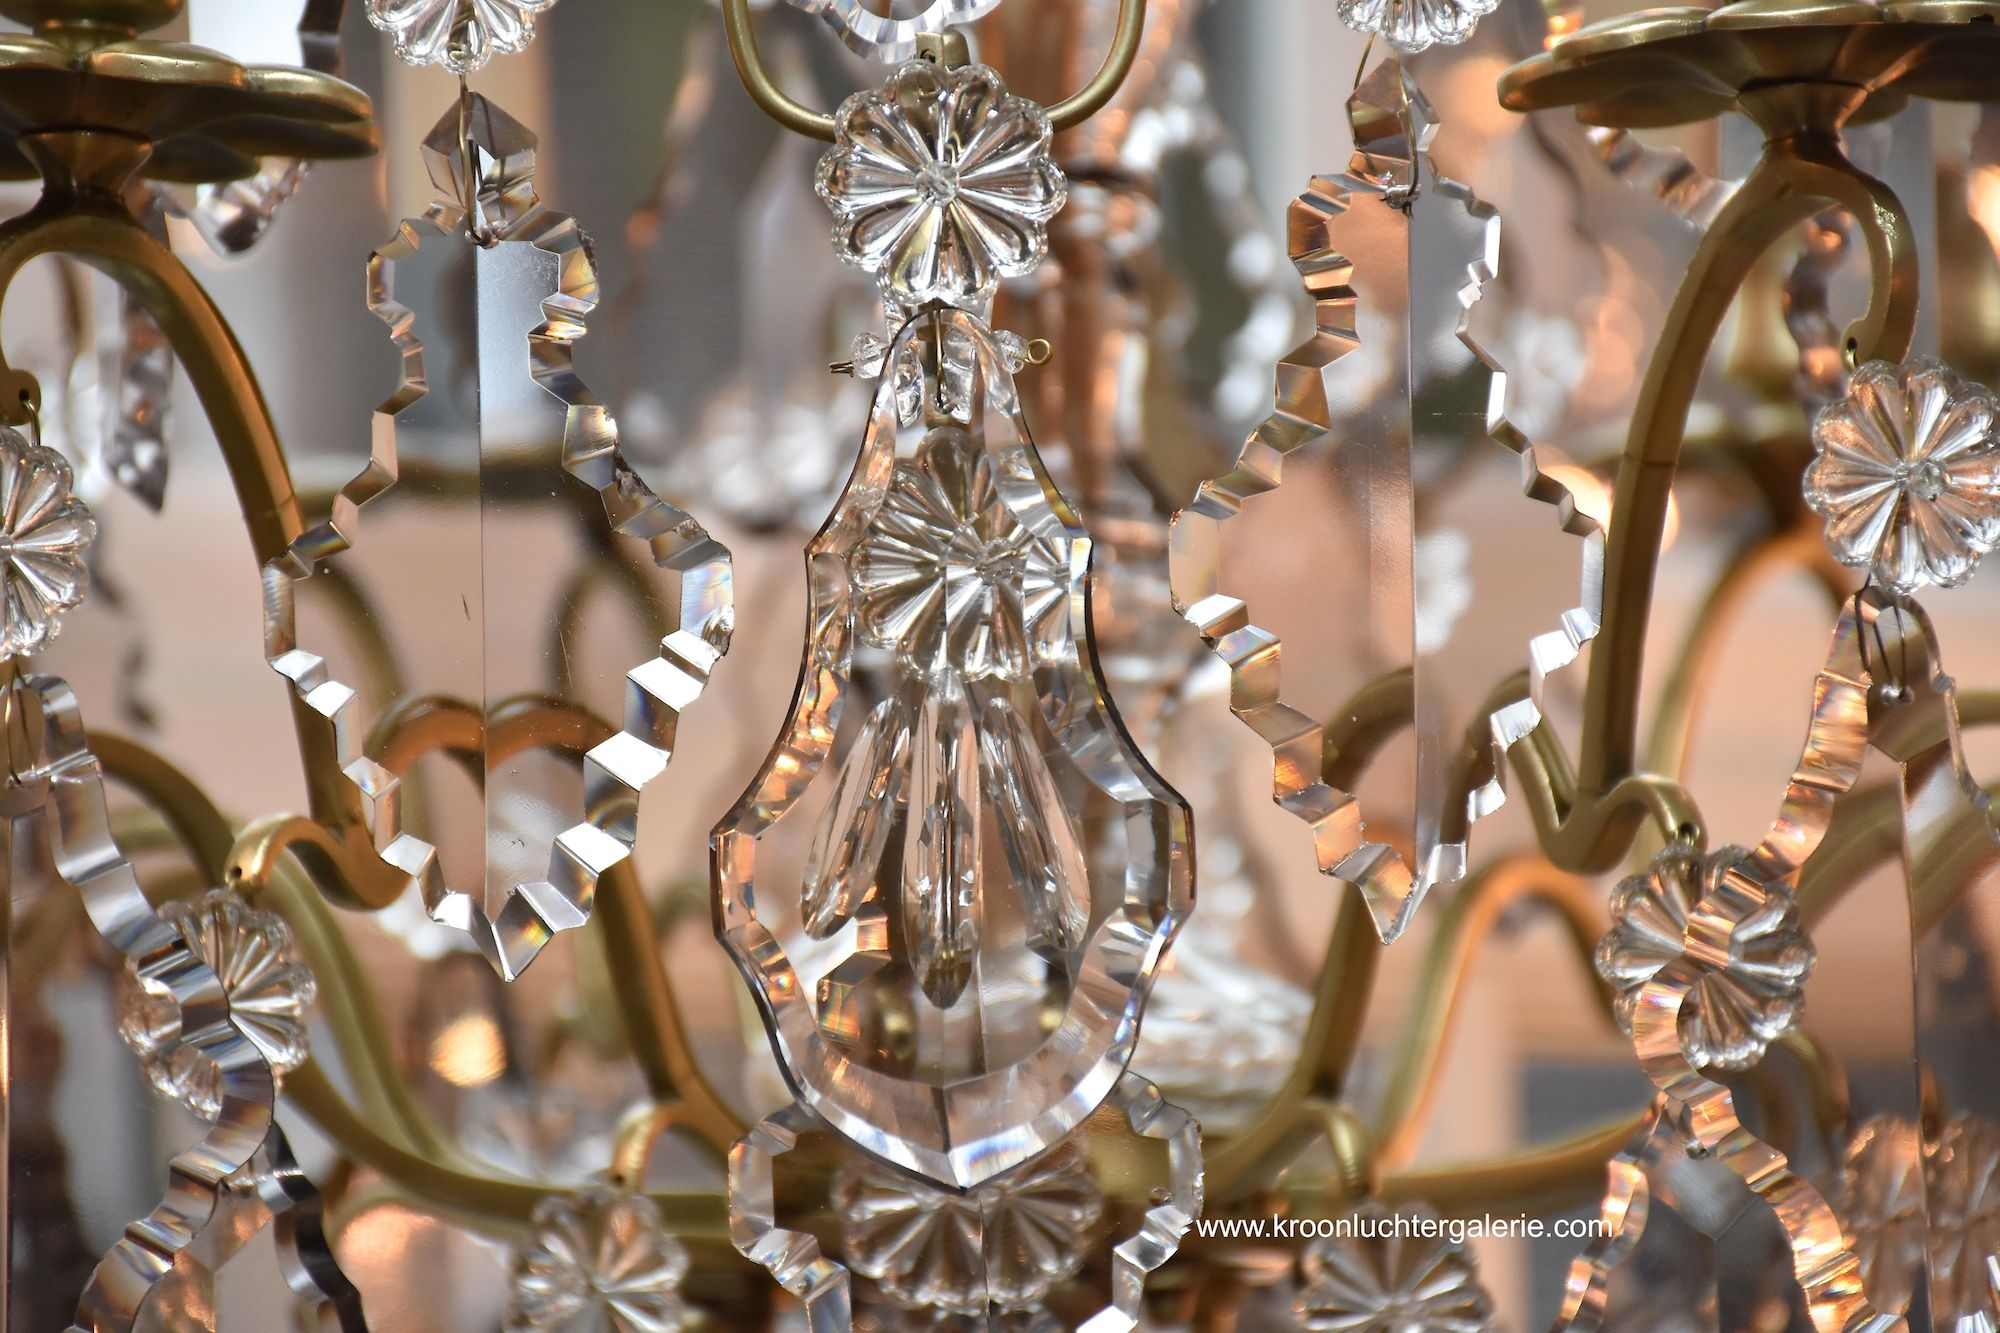 Antique French chandelier with 6 light in the style of Louis XV